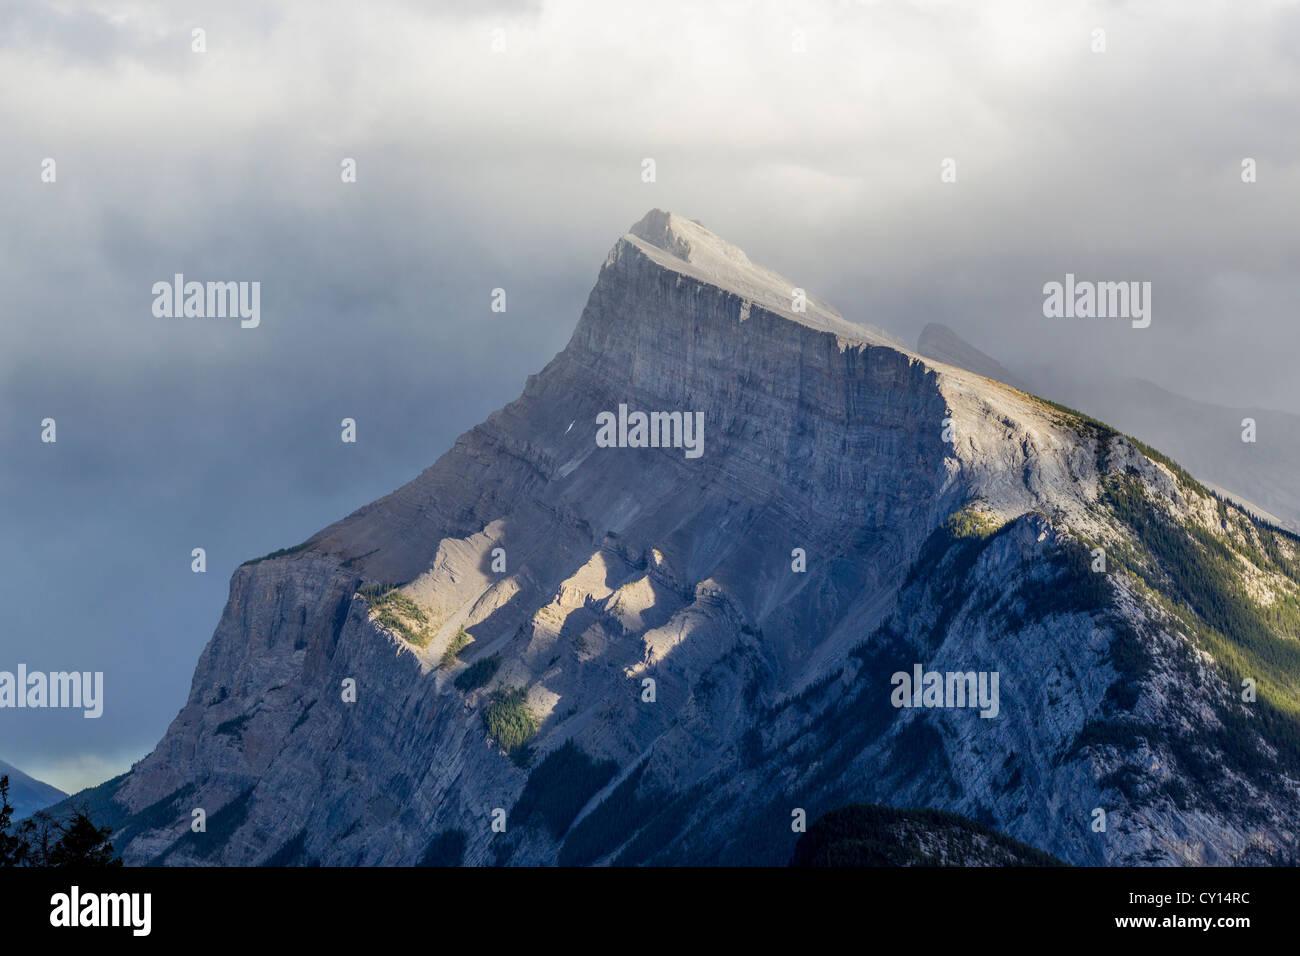 Mount Rundle is formed of outcrops of massive limestones in Banff National Park in Alberta Canada - Stock Image